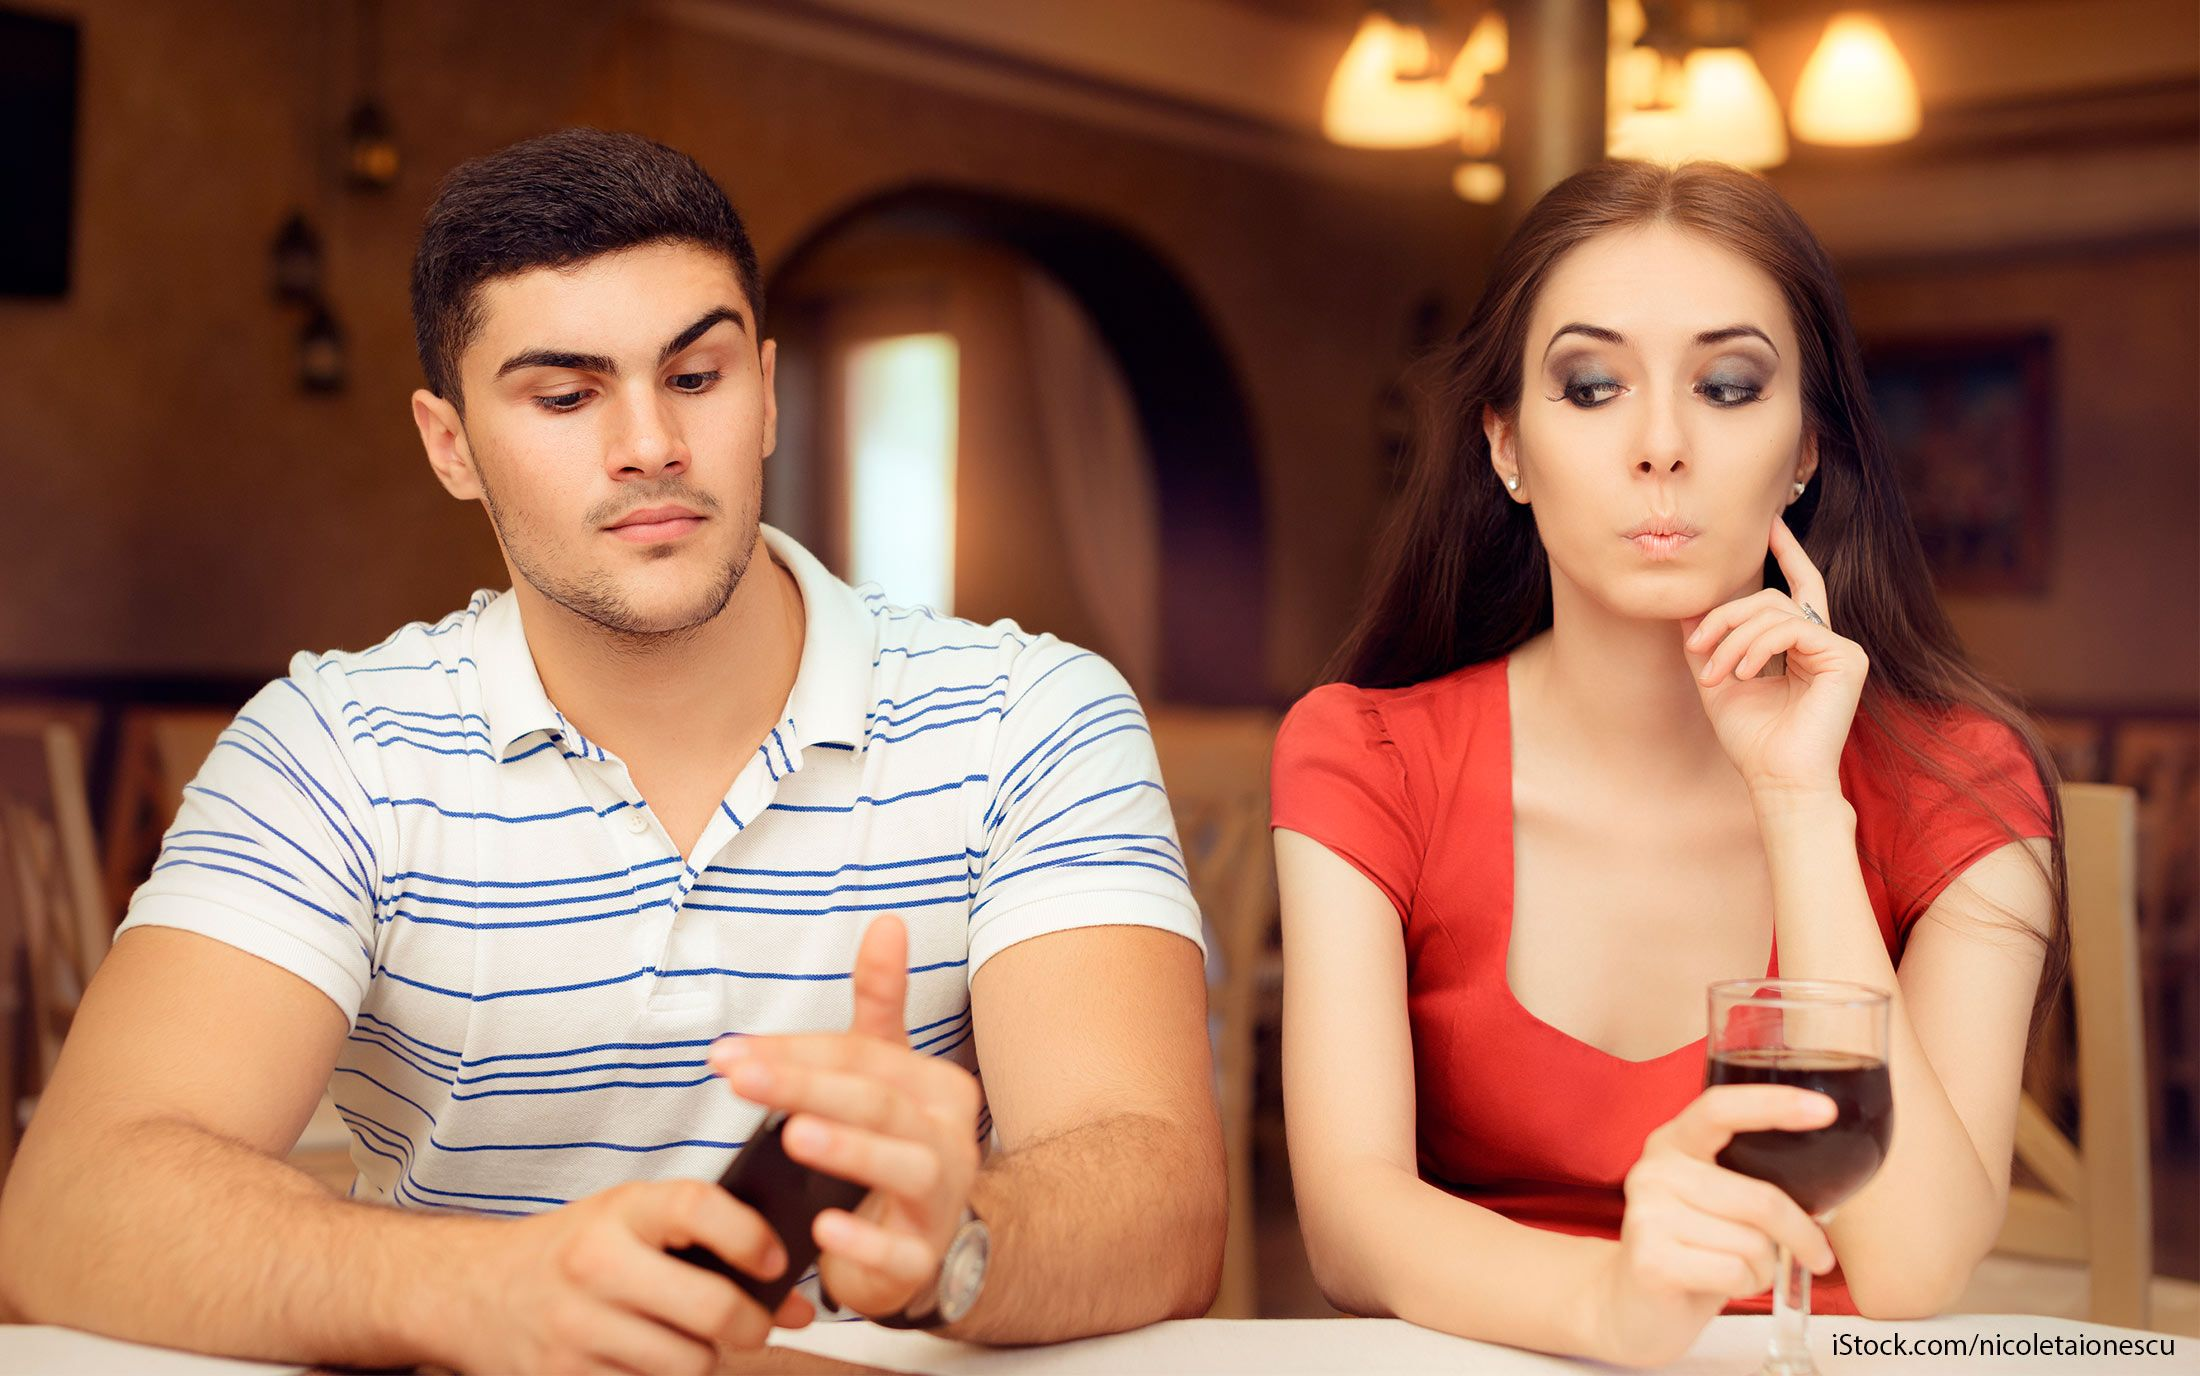 You Hide Financial Information from Your Spouse